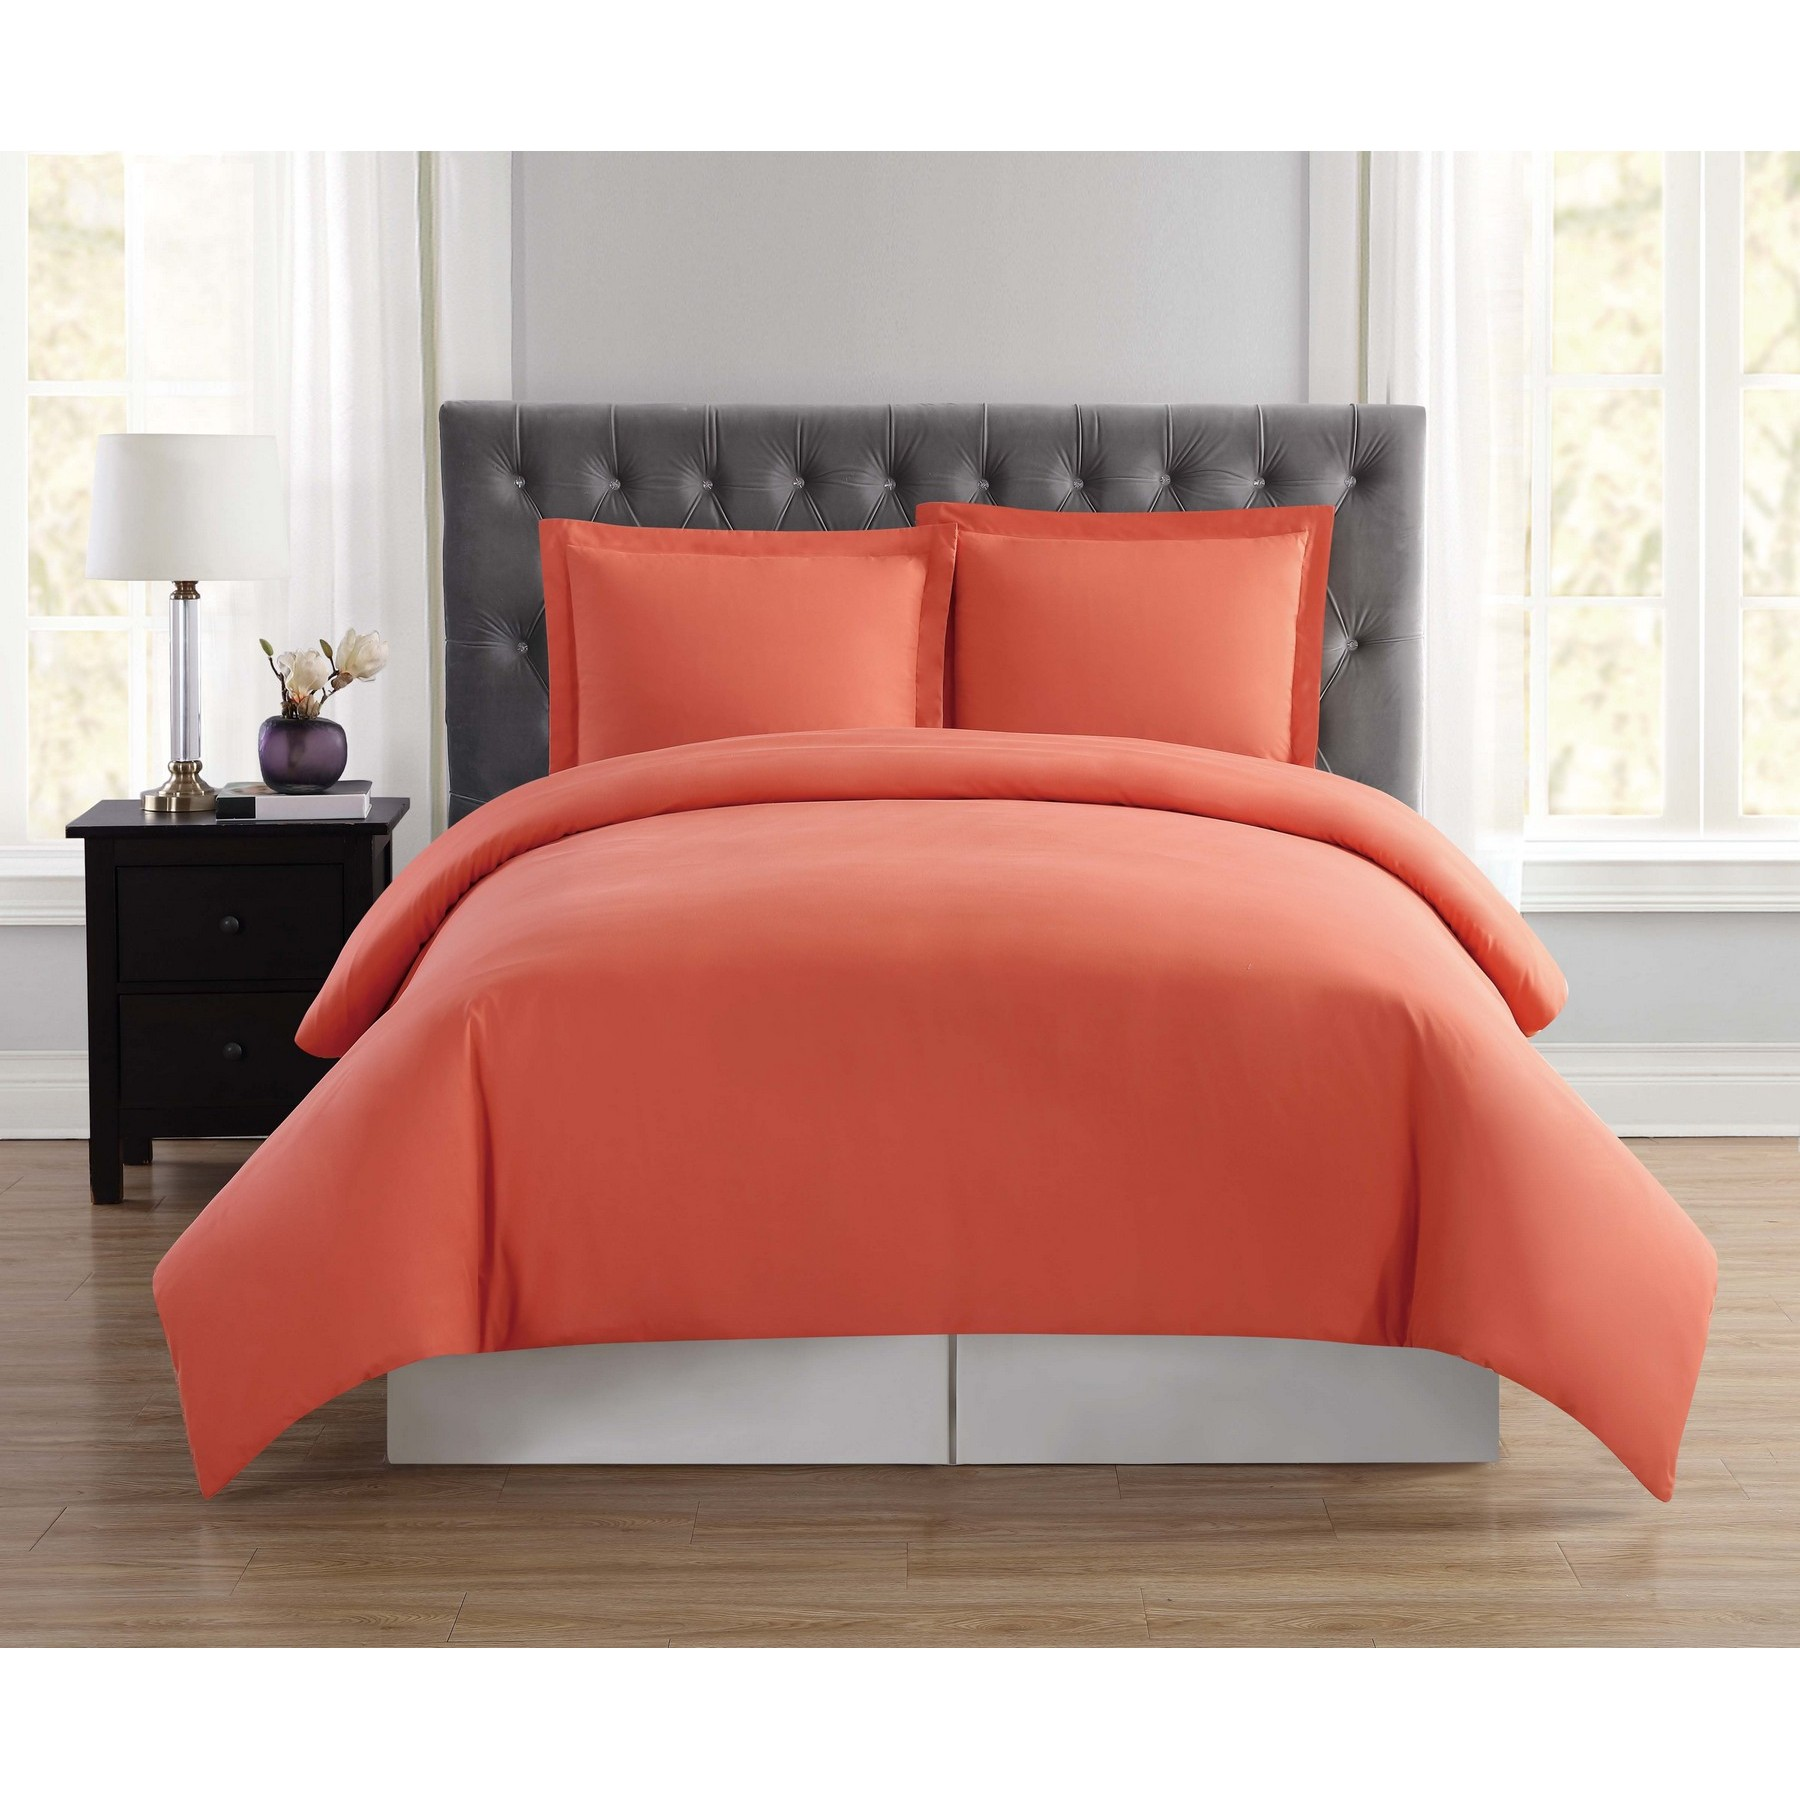 Truly Soft Everyday Blush Twin XL Duvet Set